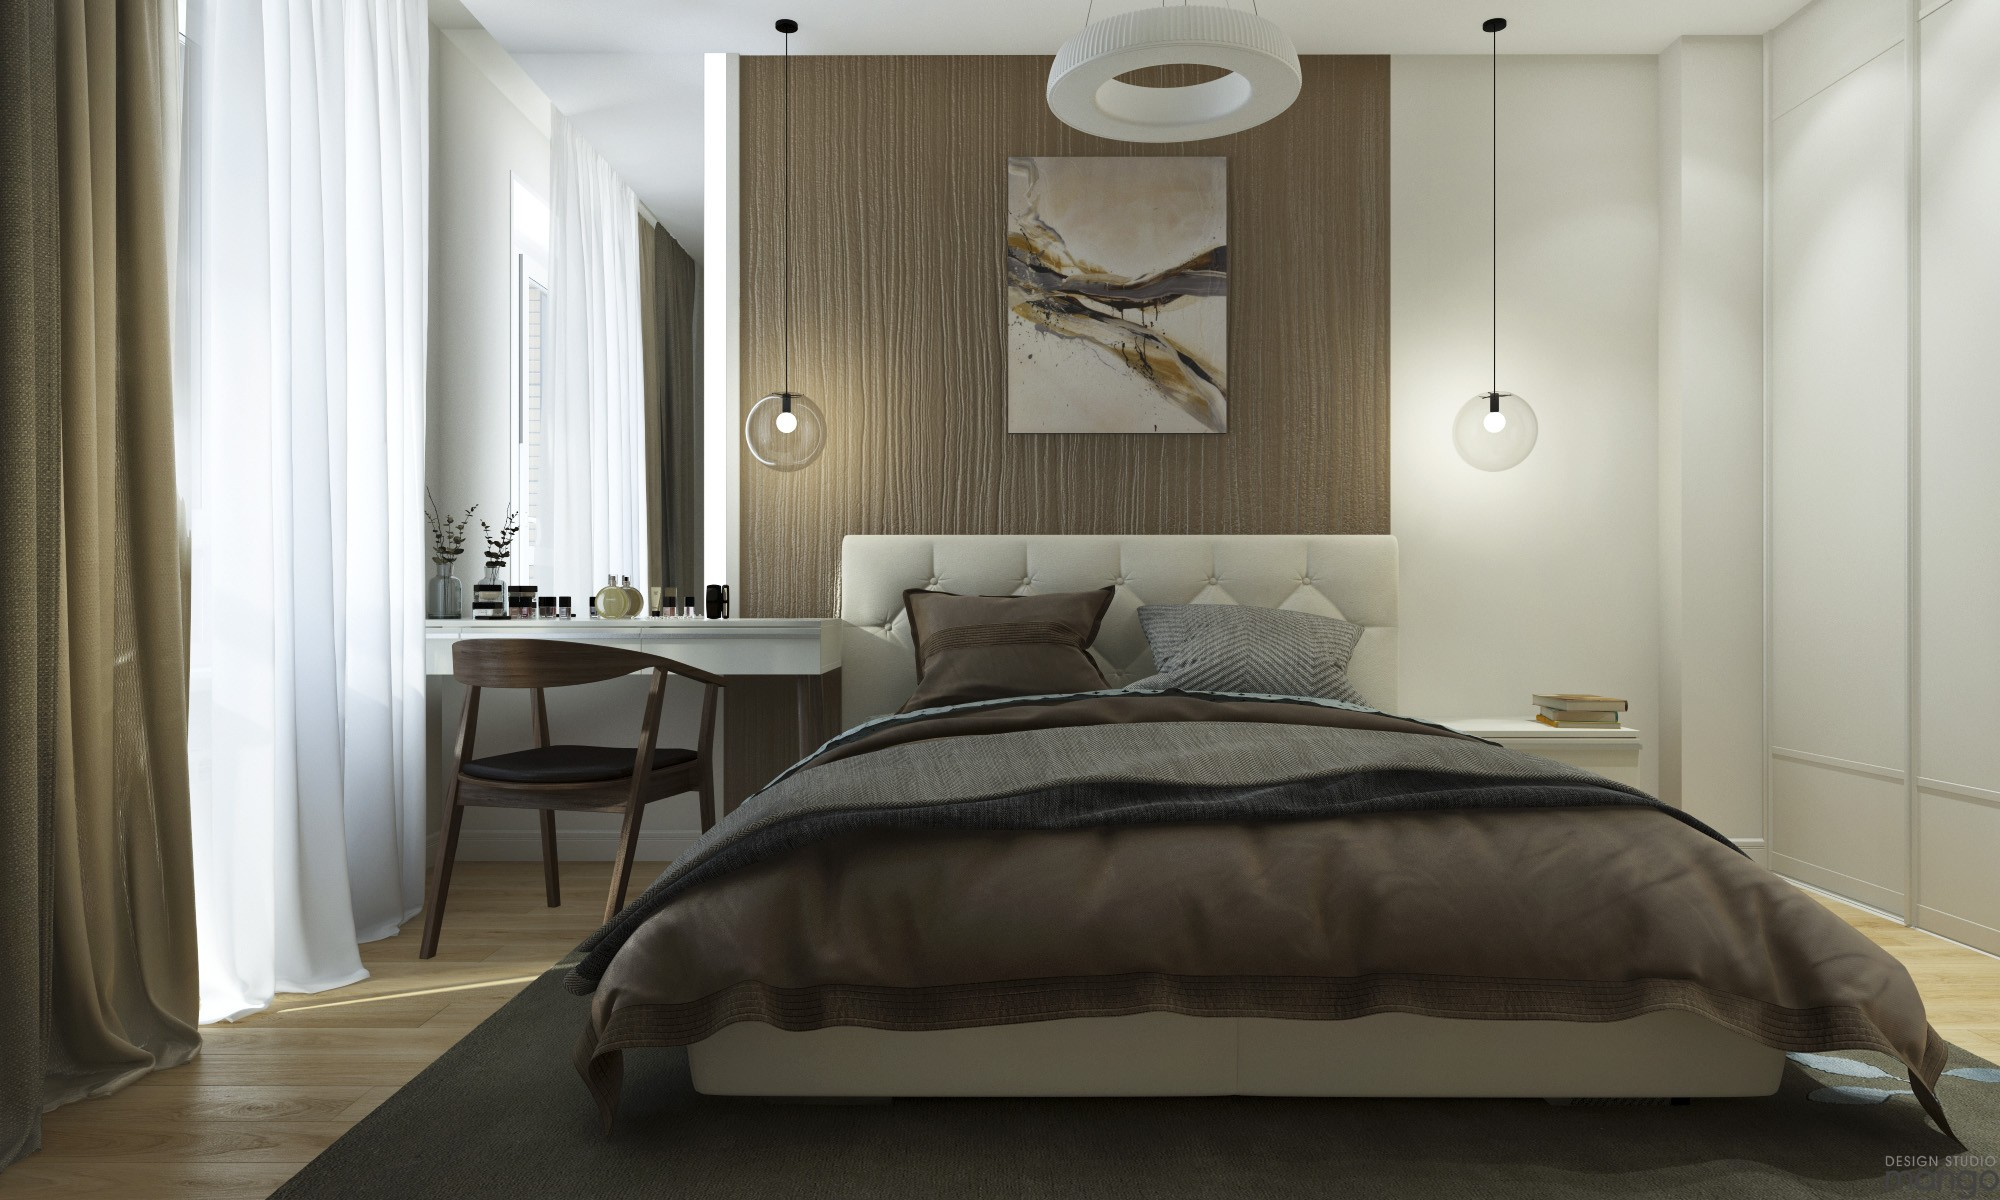 minimalist bedroom interior deisgn